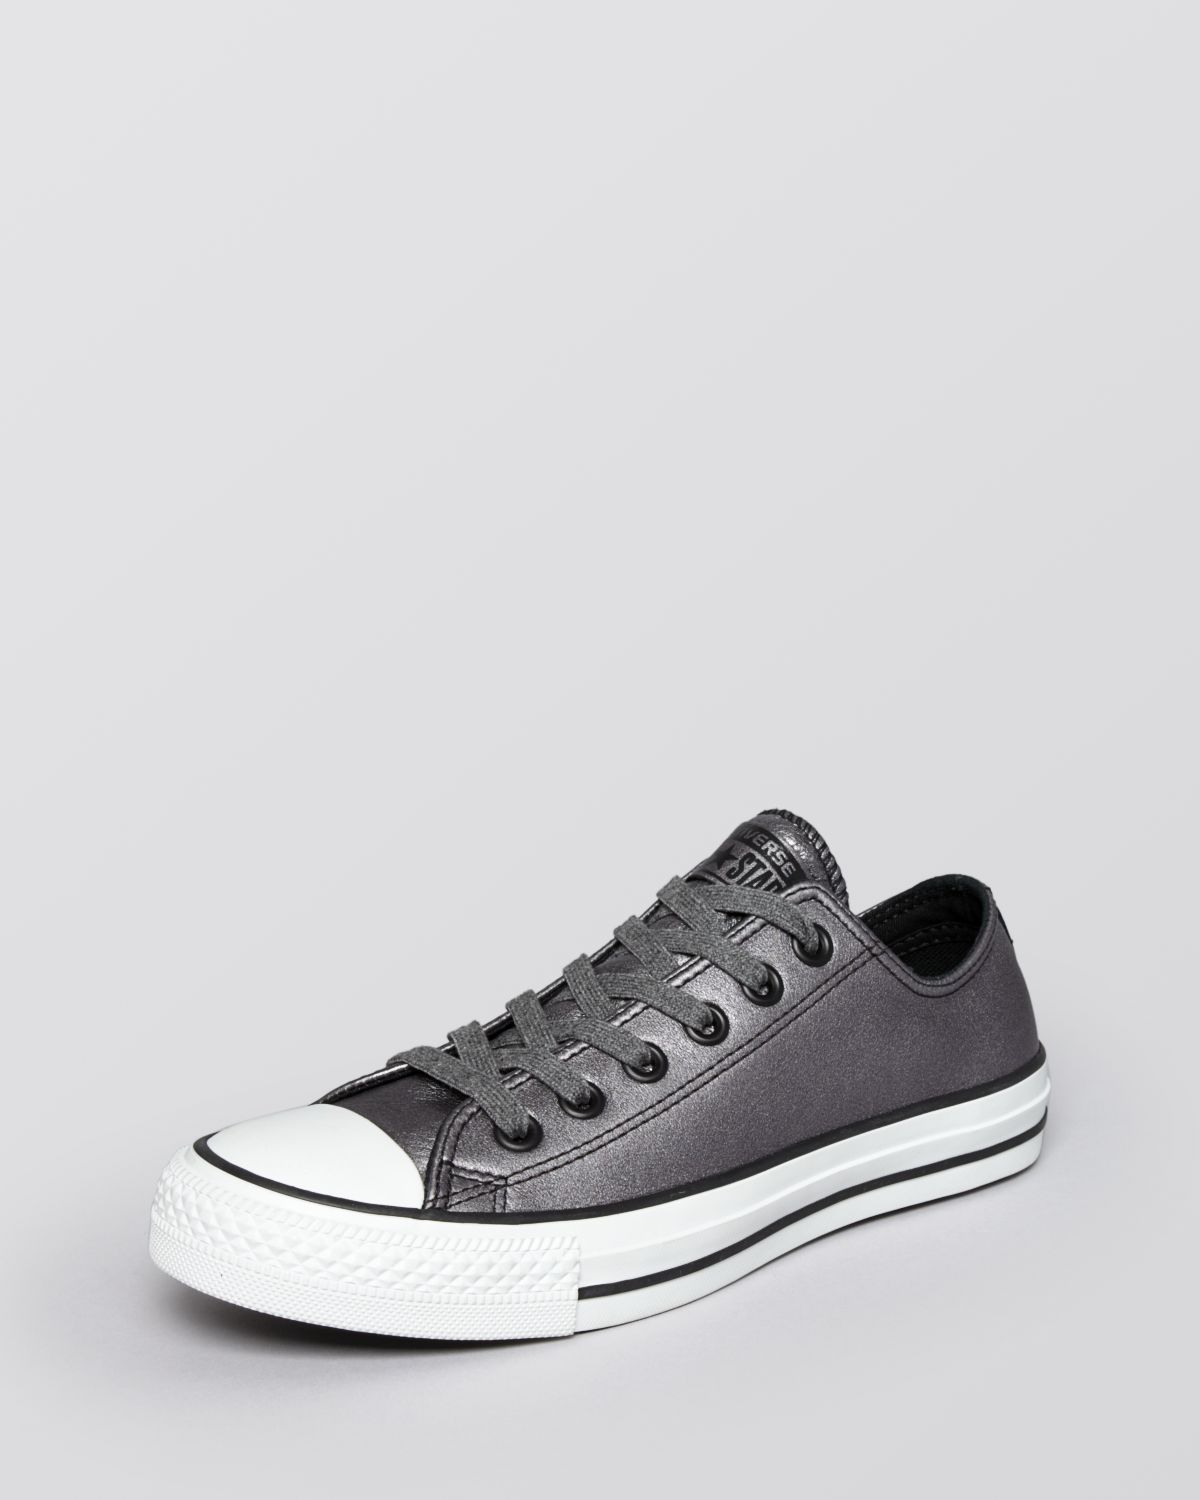 Converse Lace Up Sneakers - Low Top